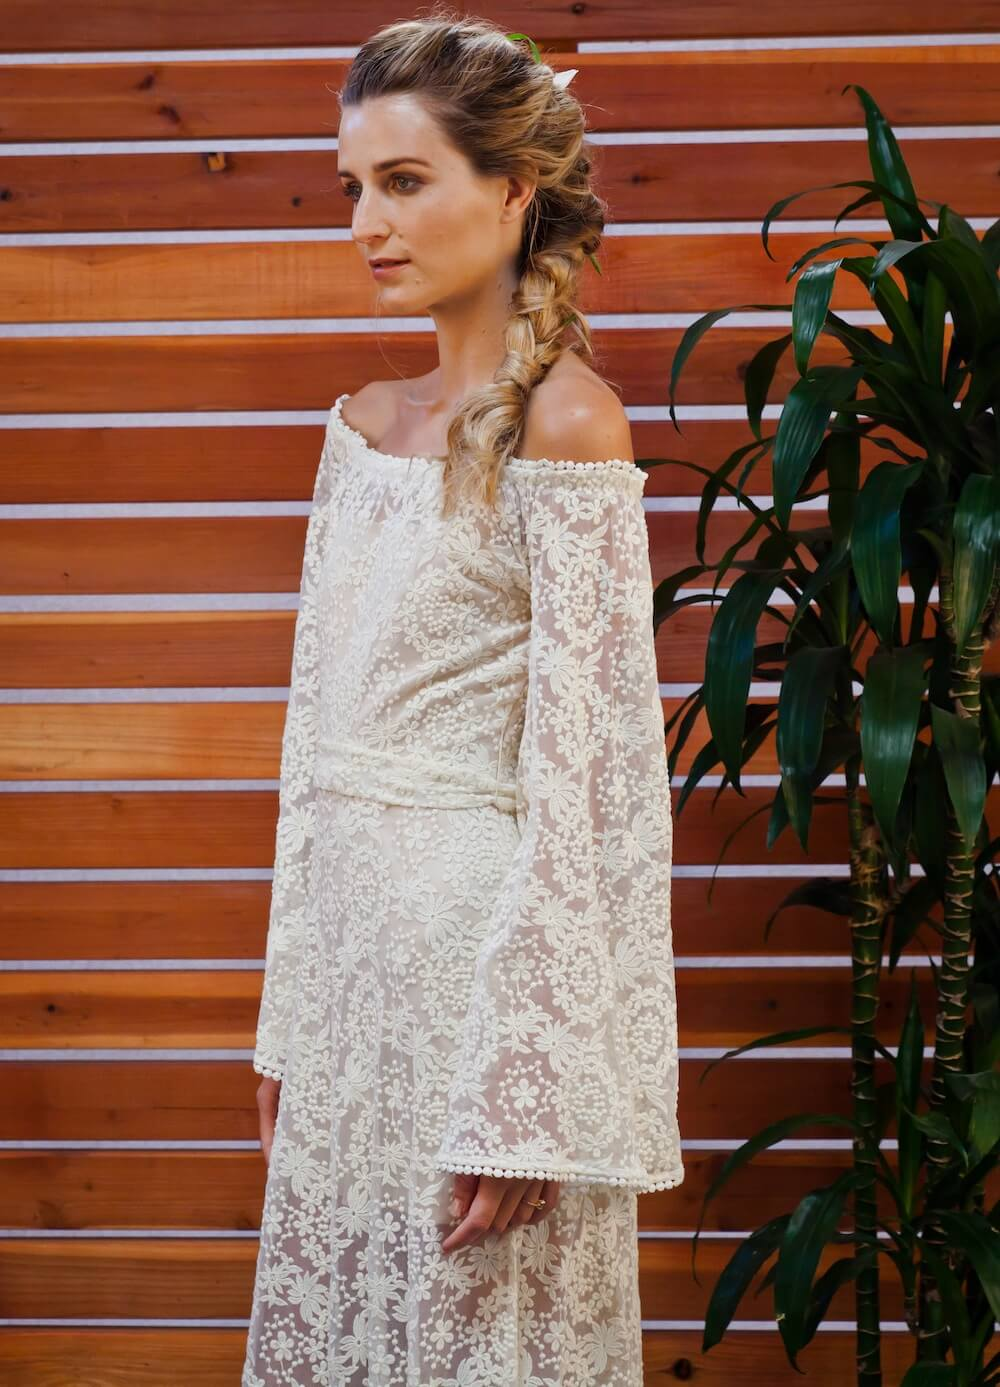 ivory or white bell sleeve boho lace gown with bell sleeves and train bell sleeve wedding dress boho lace bell sleeve 70s style hippie wedding